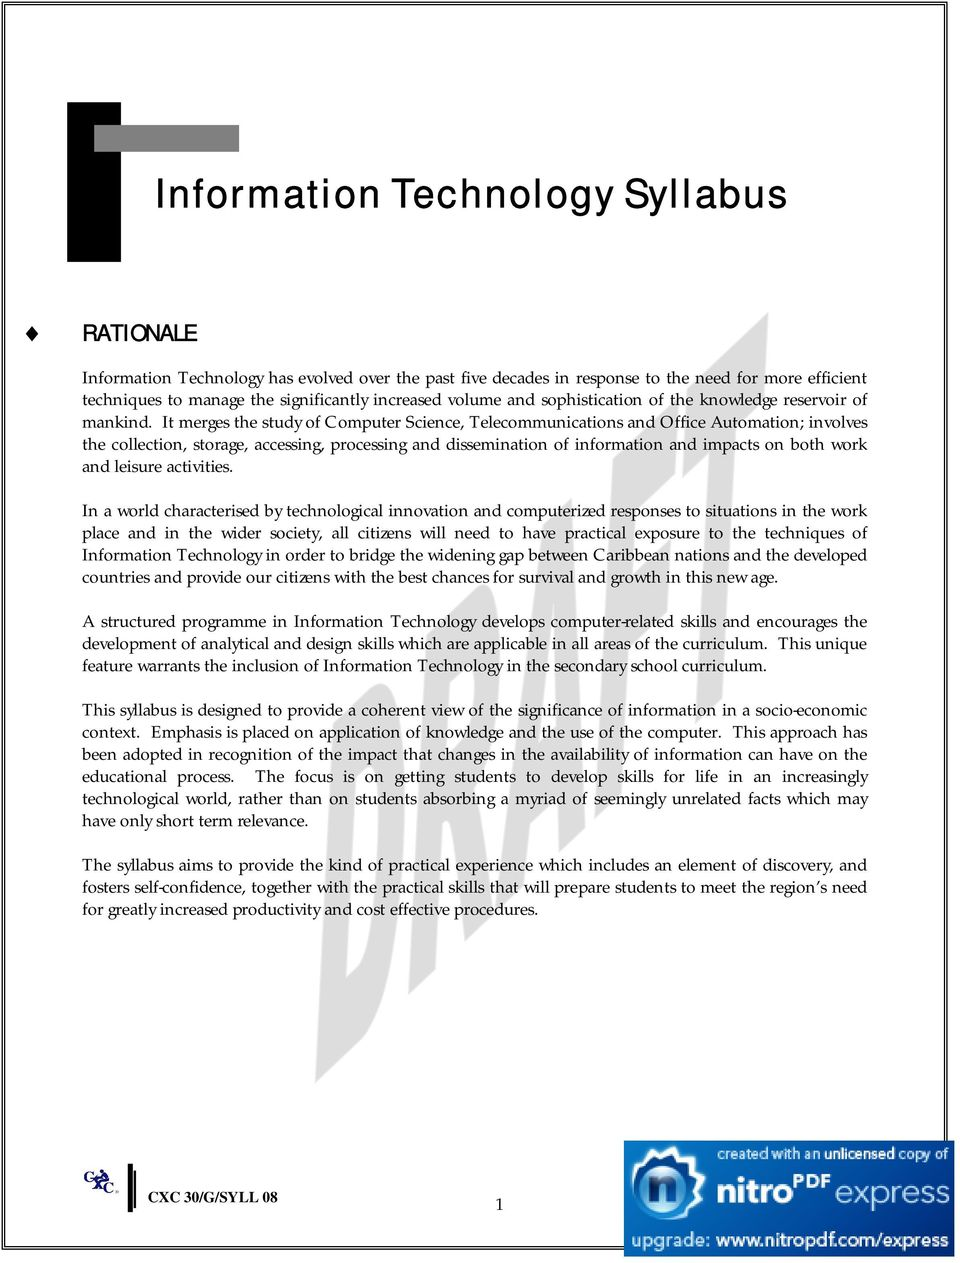 It merges the study of Computer Science, Telecommunications and Office Automation; involves the collection, storage, accessing, processing and dissemination of information and impacts on both work